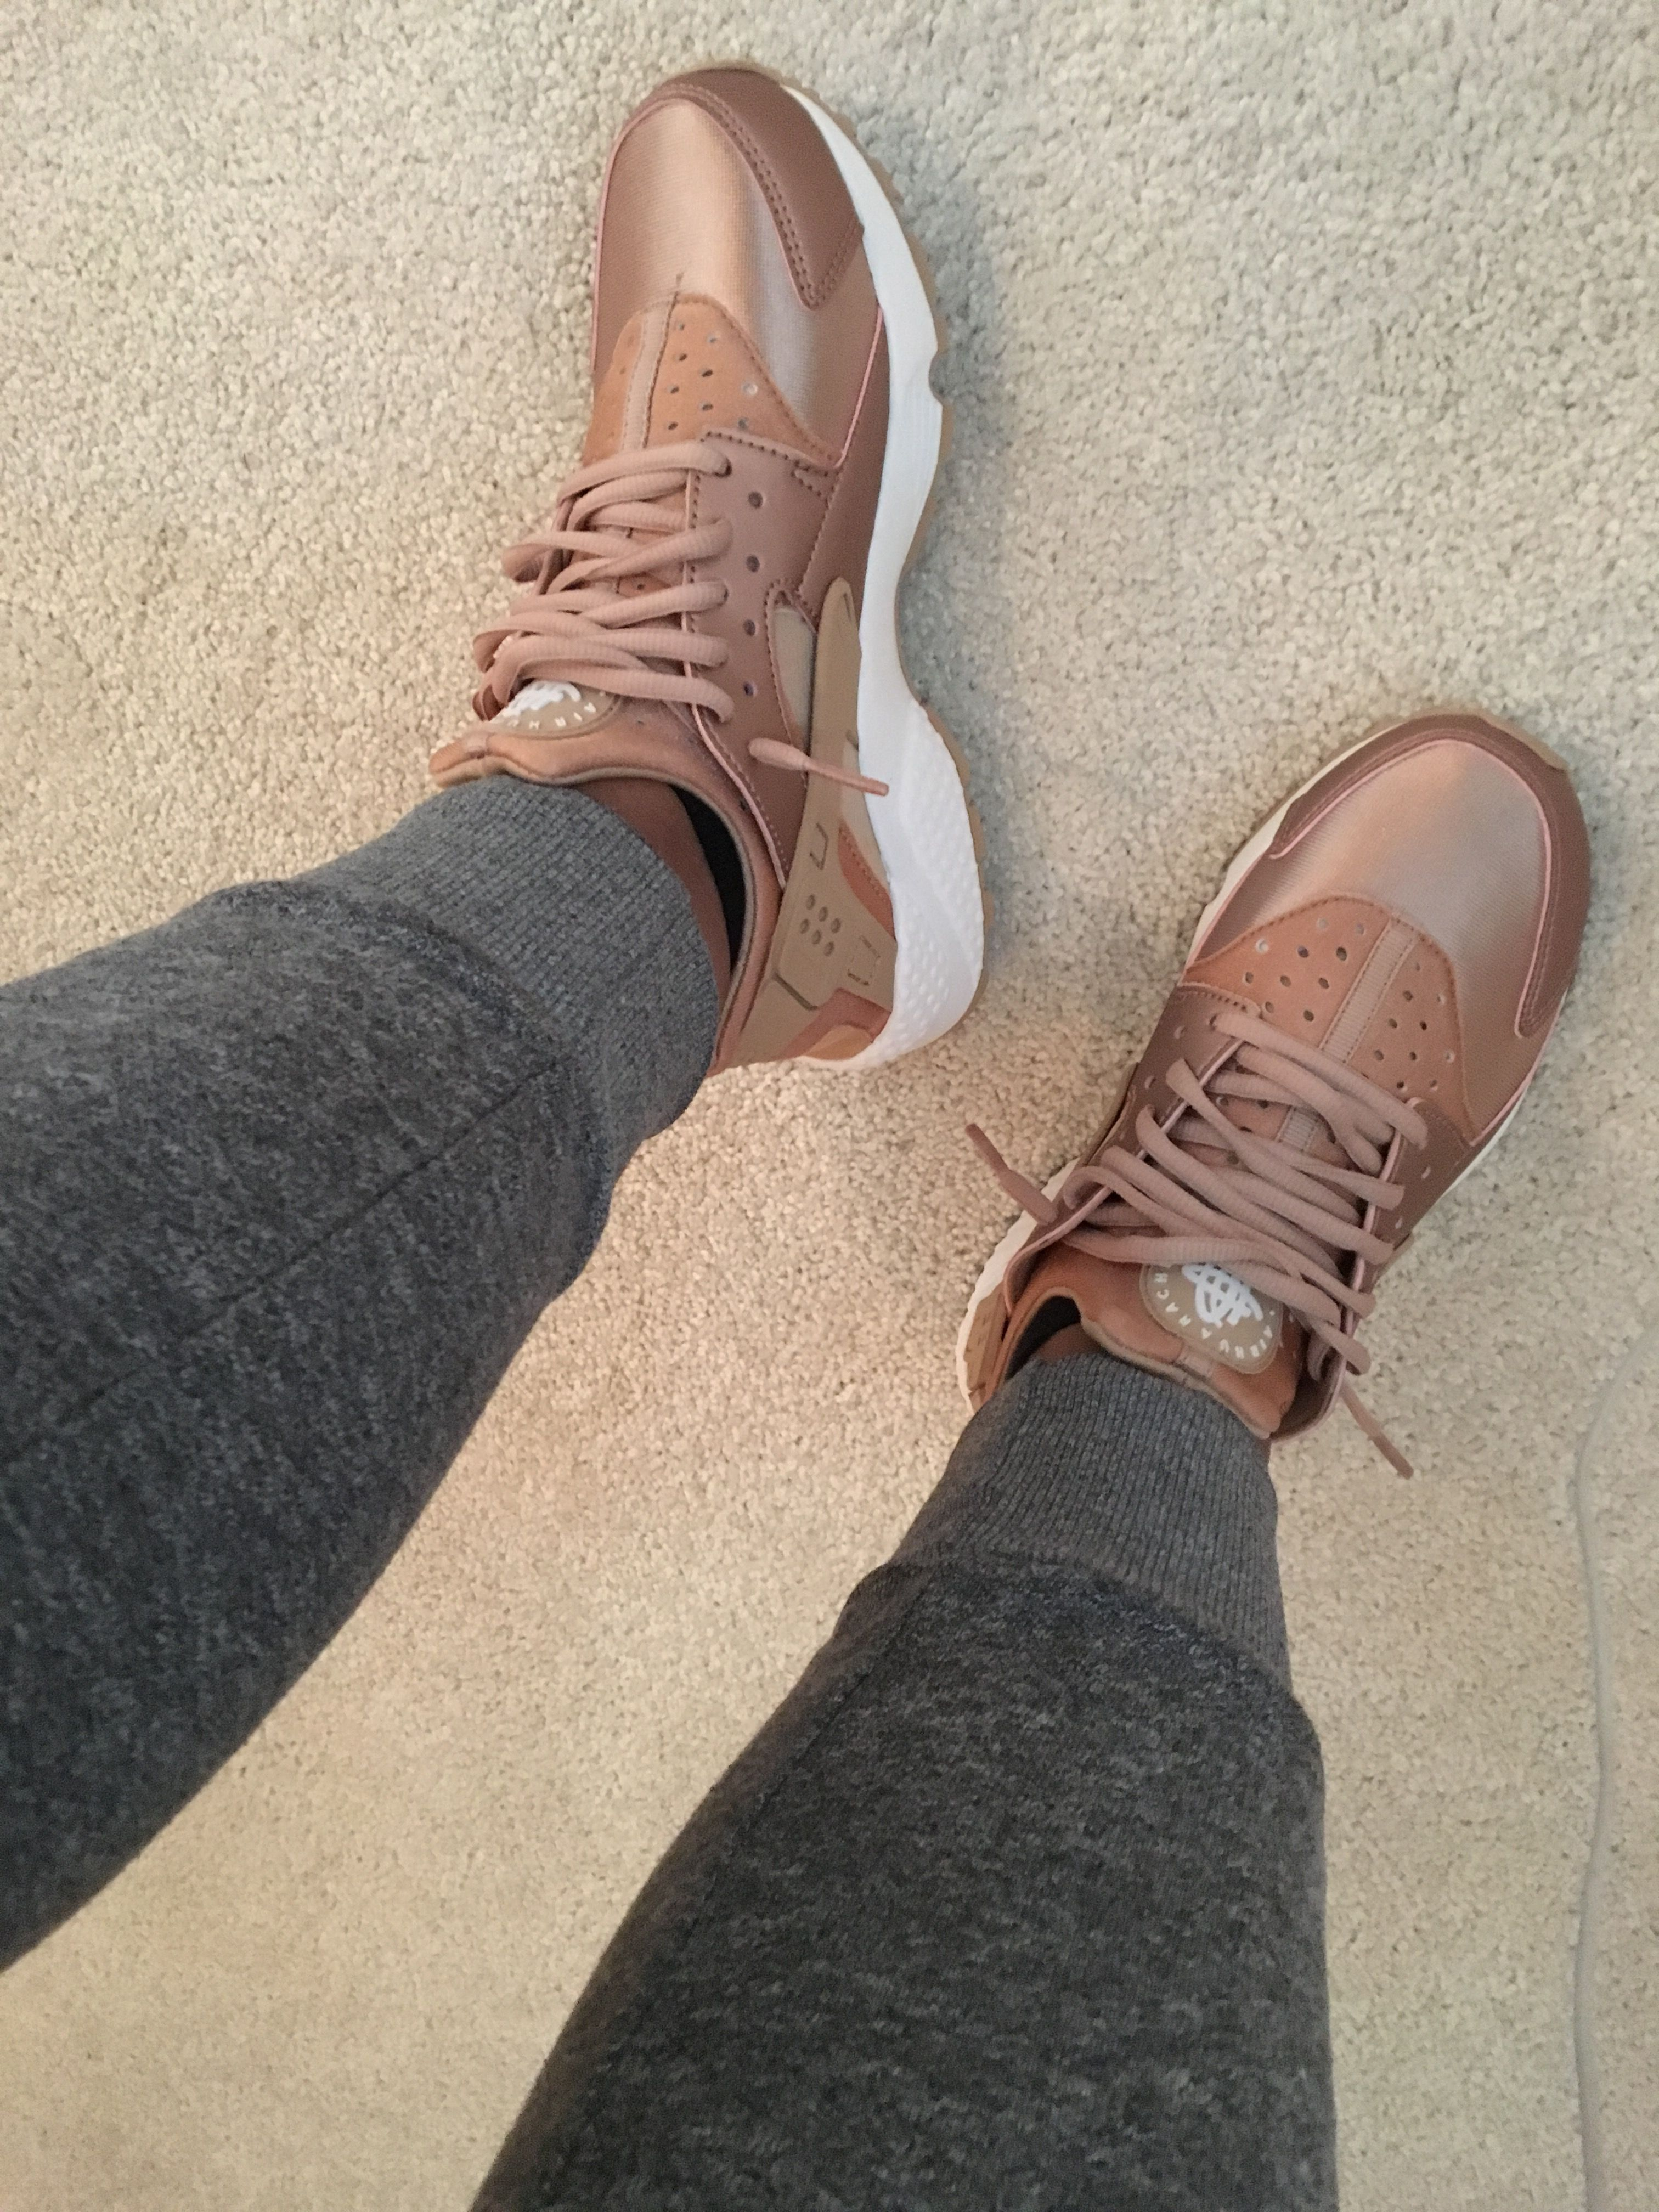 d13070f68eac Rose Gold Nike Huaraches